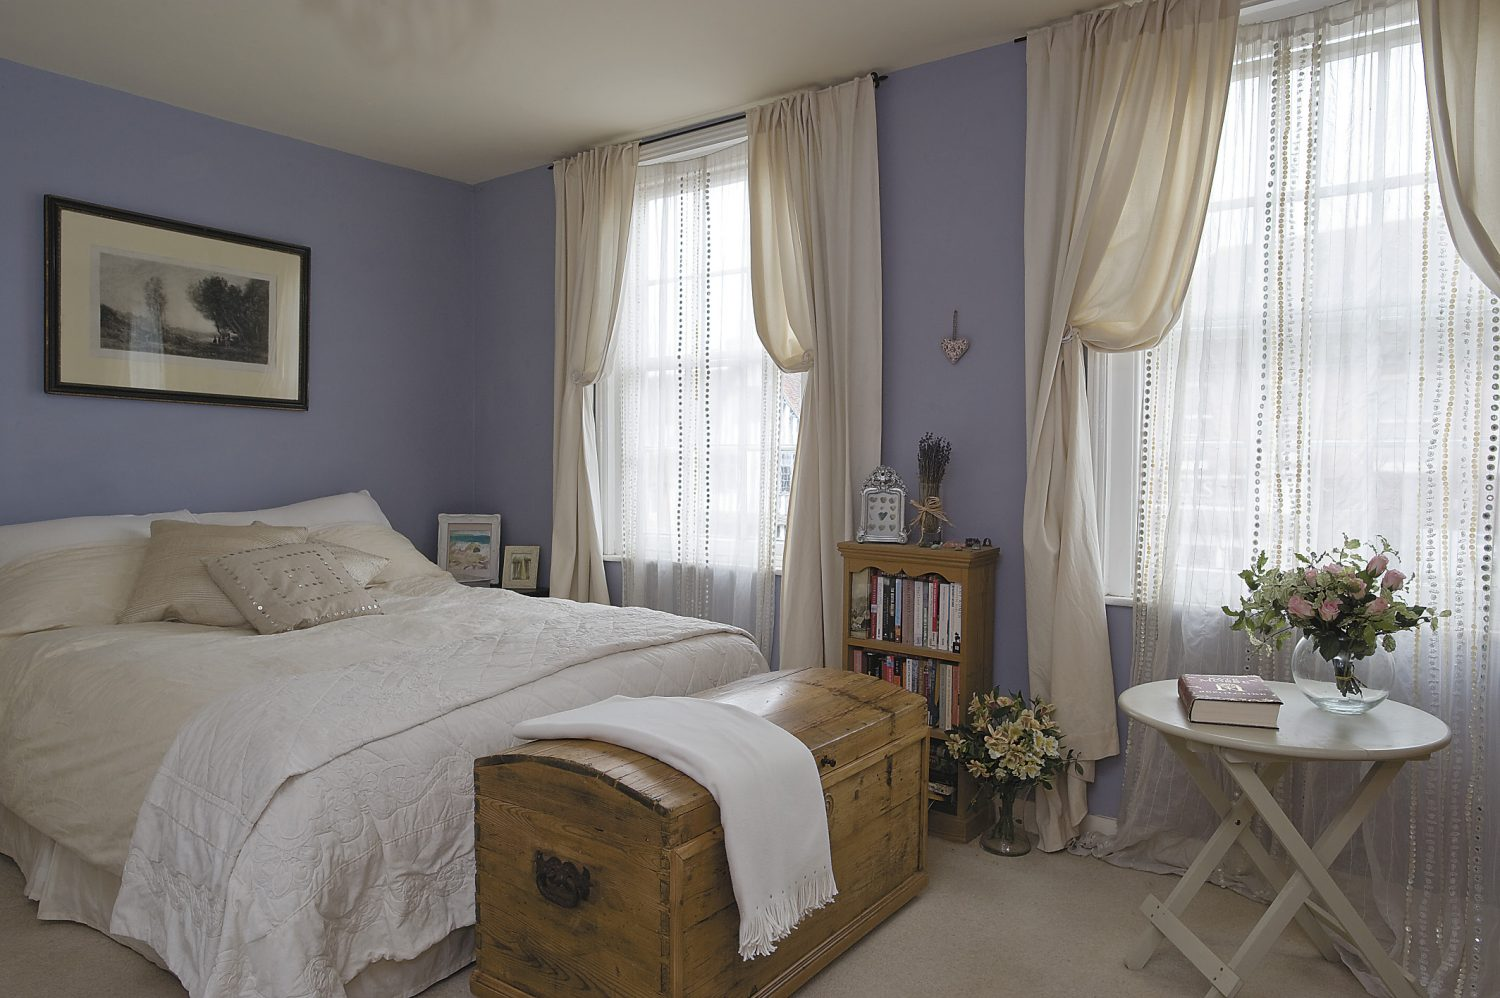 the main bedroom has lilac walls and ivory curtains. The lithograph above the bed is French